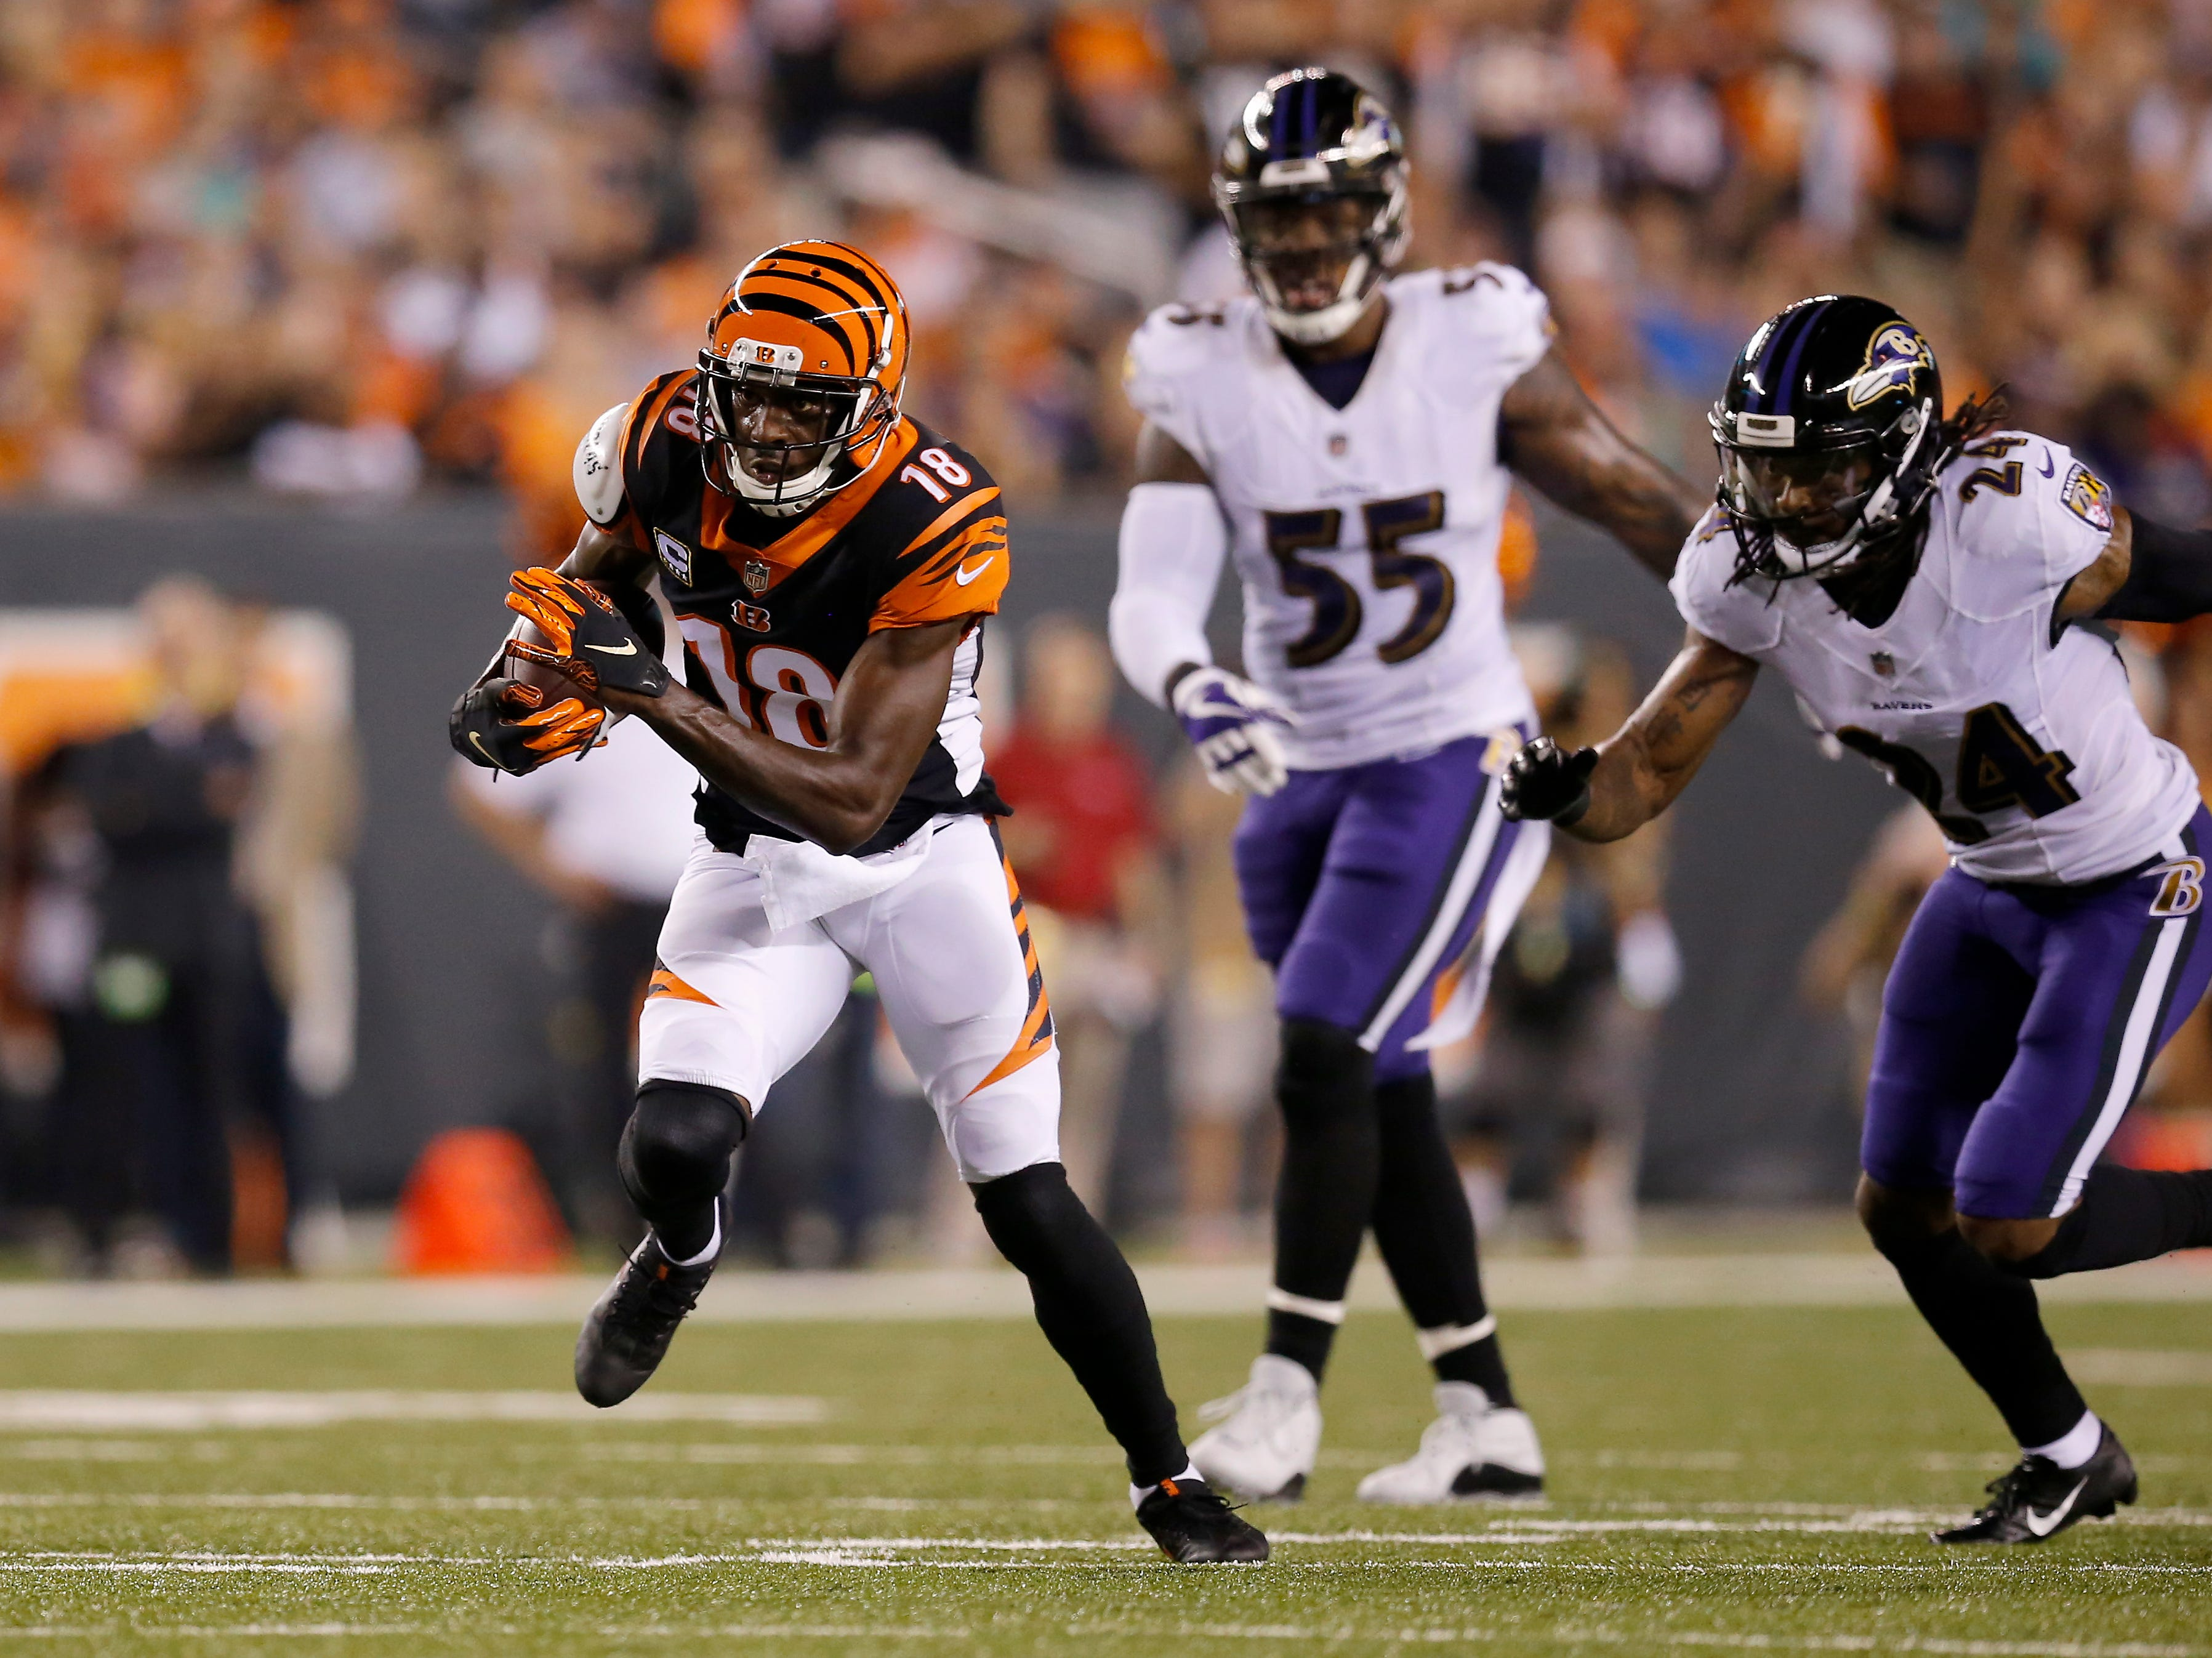 Cincinnati Bengals wide receiver A.J. Green (18) breaks away from defenders on his way to a touchdown in the first quarter of the NFL Week 2 game between the Cincinnati Bengals and the Baltimore Ravens at Paul Brown Stadium in downtown Cincinnati on Thursday, Sept. 13, 2018. The Bengals led 28-14 at halftime.